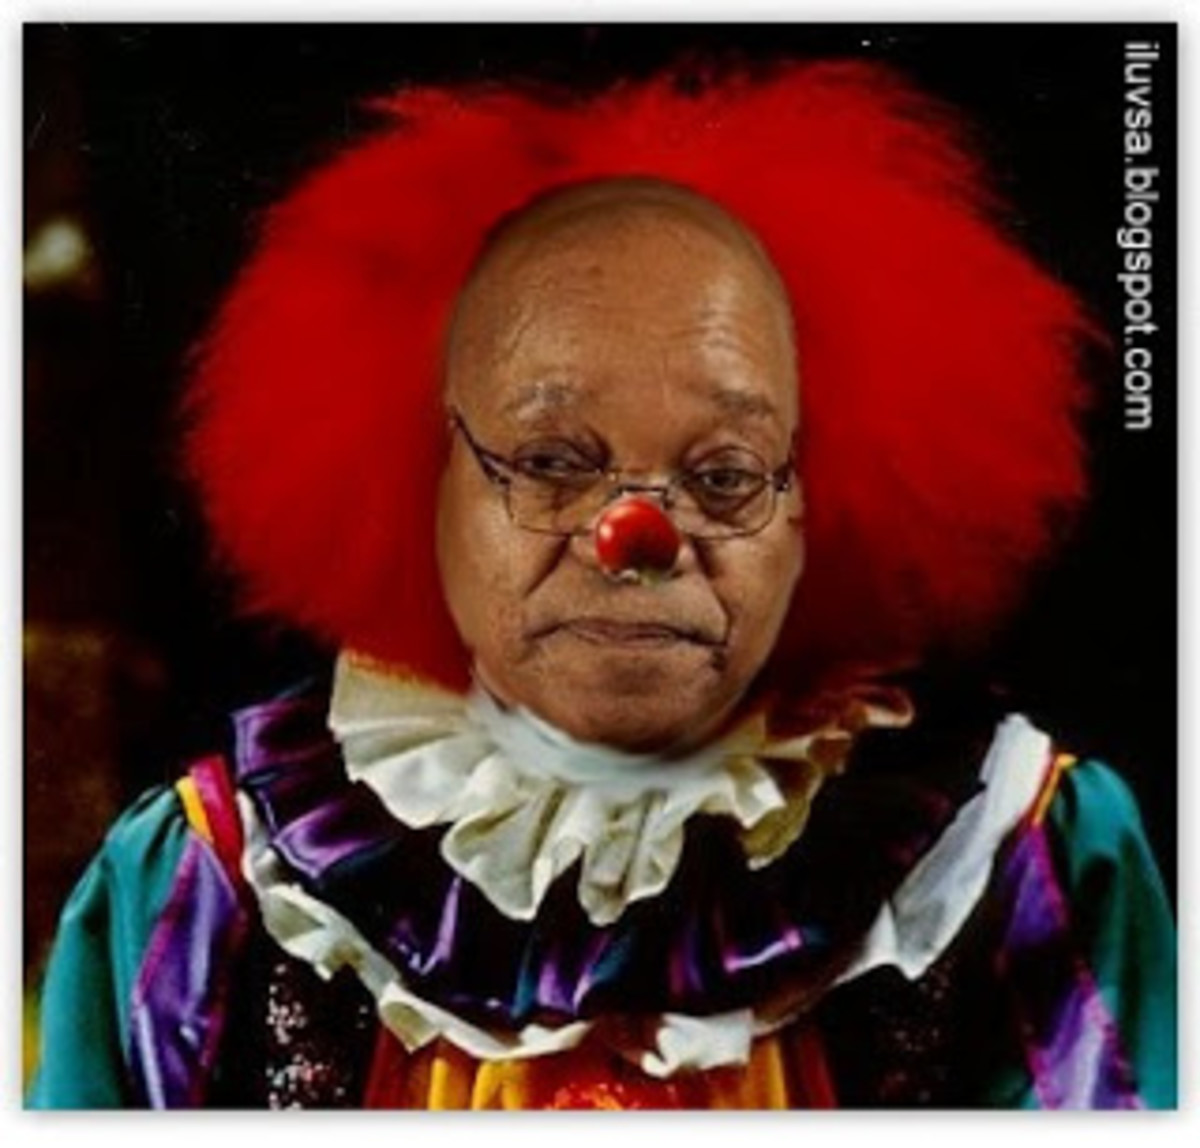 During this year's election campaign, Zuma's shiny pate was everywhere on placards tied to lampposts in city streets and the remotest rural village. You couldn't switch on a television without seeing the swivelling hips and hearing his oft-repeated d